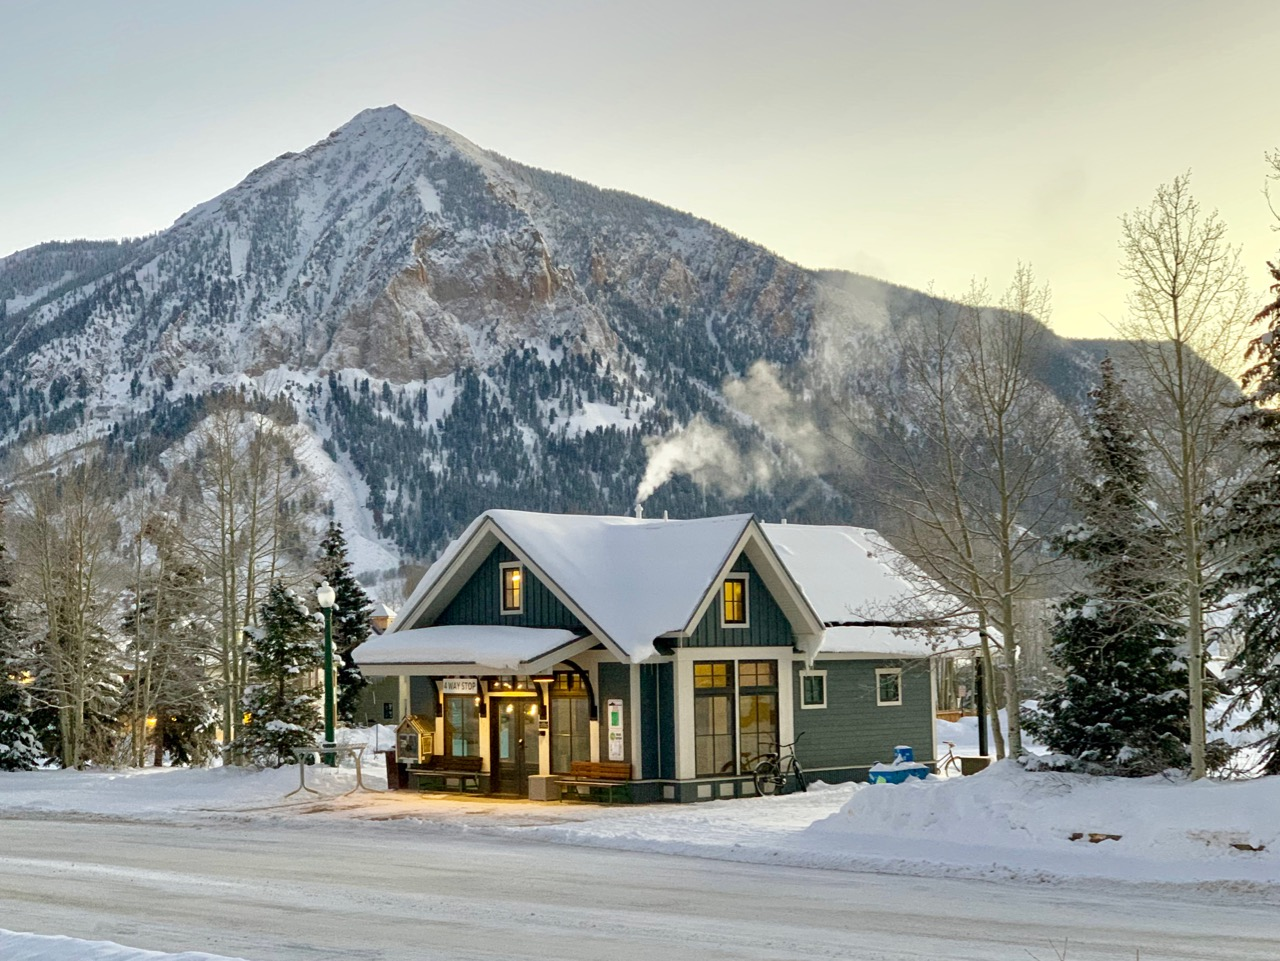 Determining Price When Selling Your Crested Butte Home